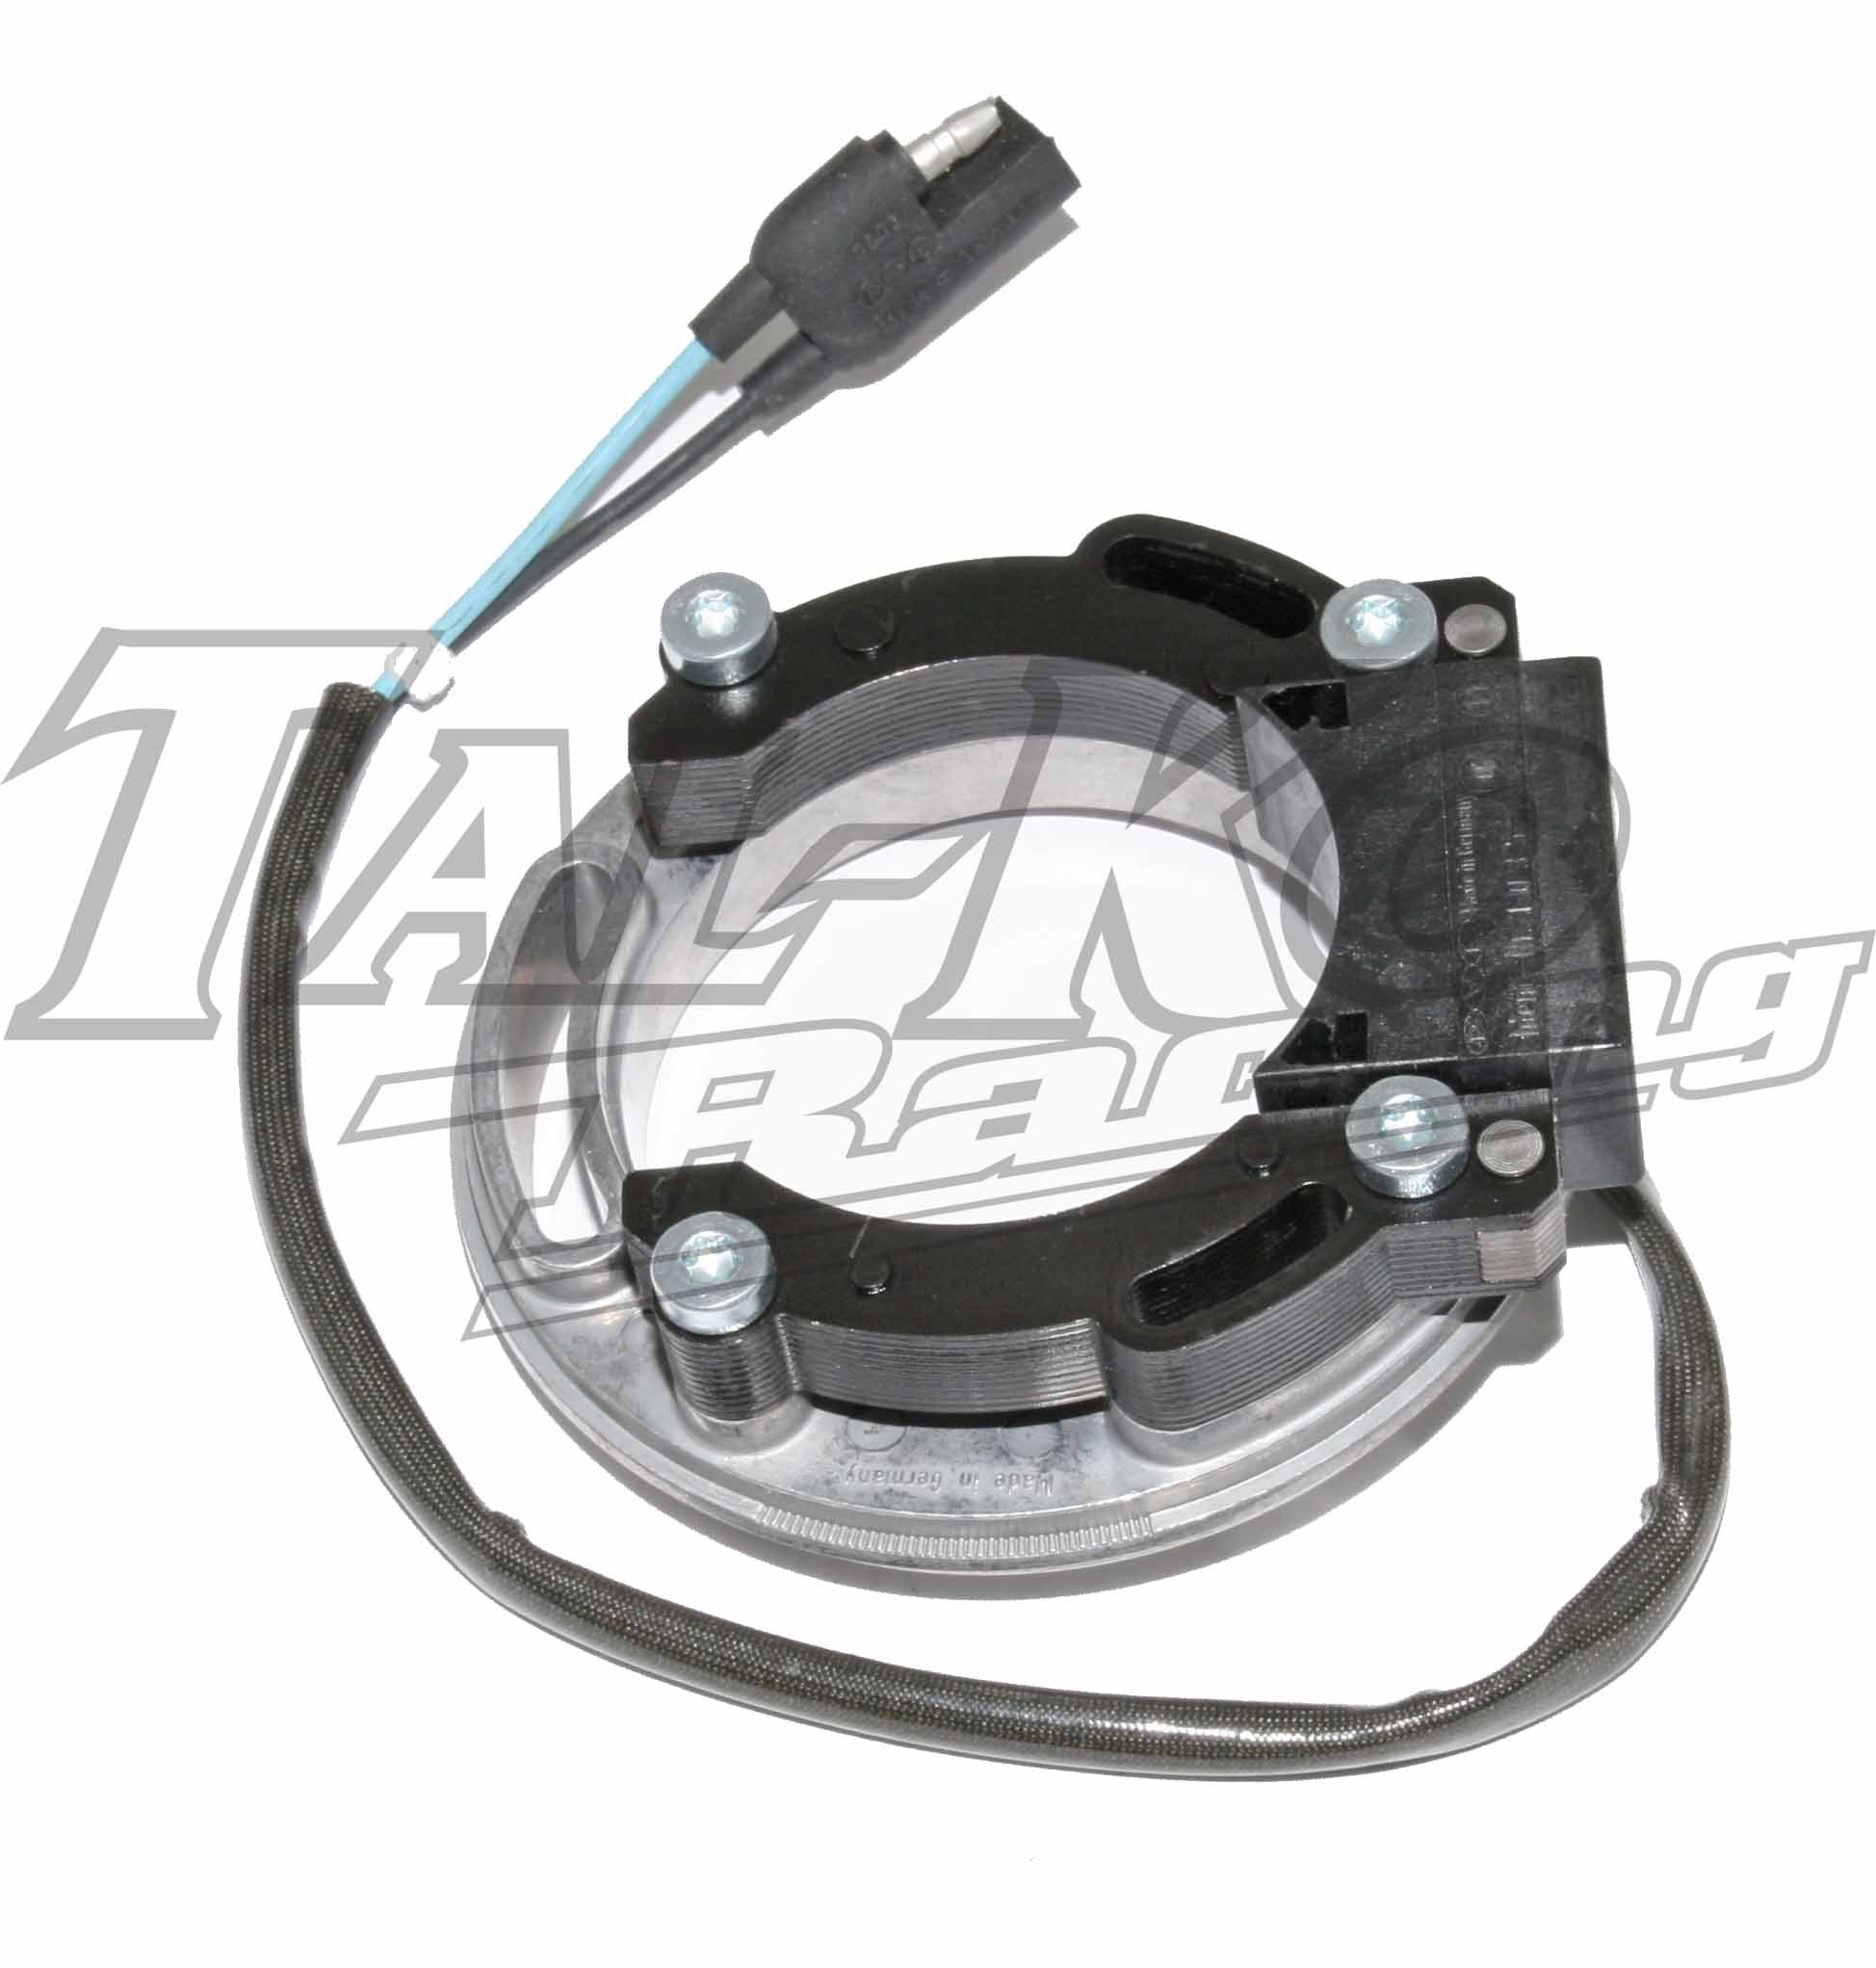 TKM K4S PVL DIGITAL IGNITION STATOR 1035